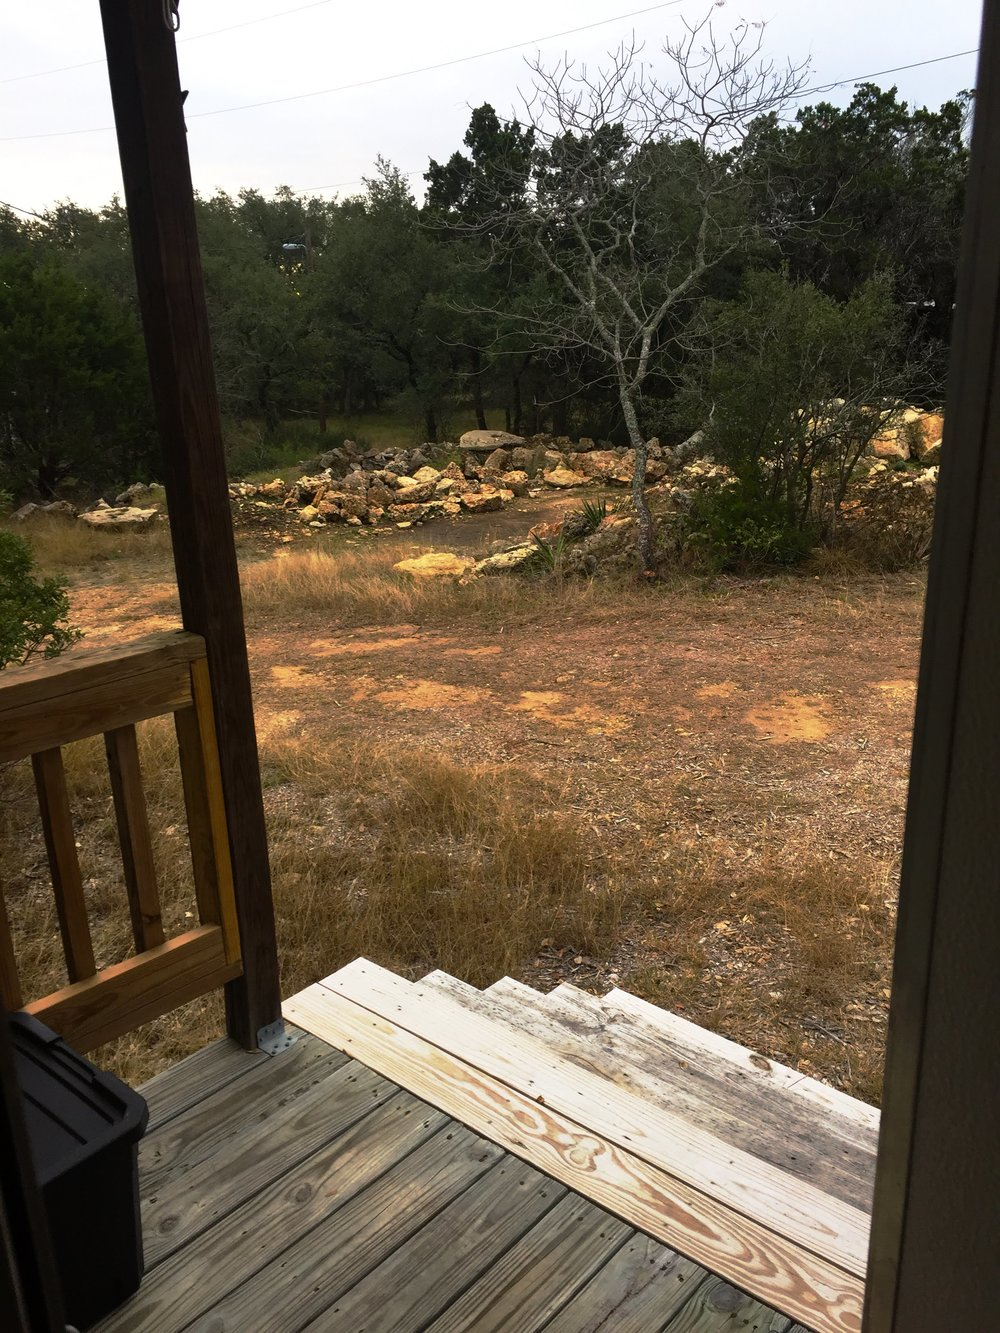 East Canyon Lake, TX - Looking out my front door...